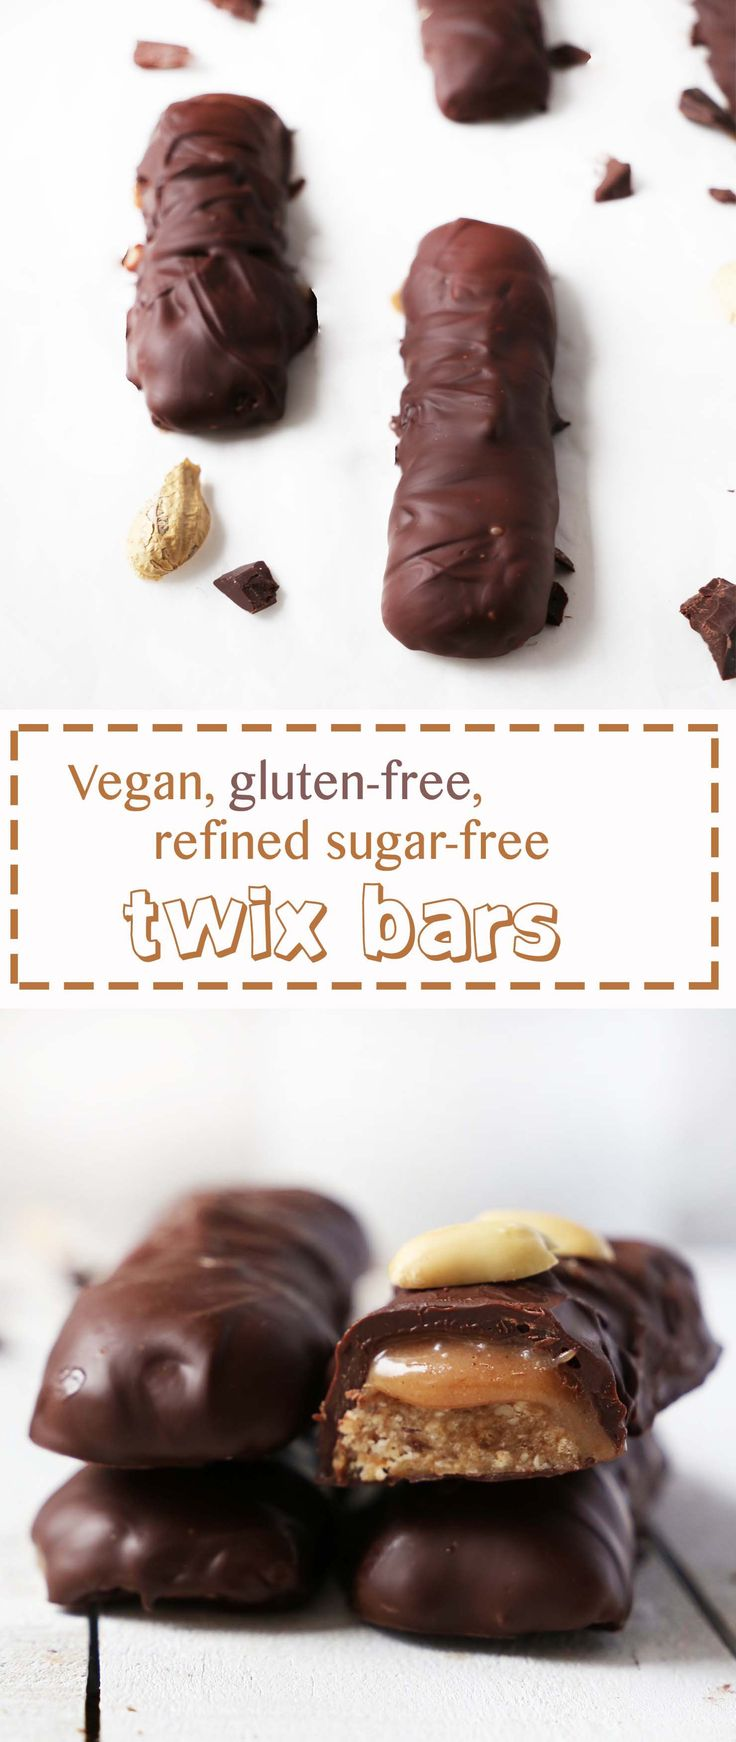 Vegan Twix Bars. My favorite candy bar wothout the GI upset and break outs!  Yes!